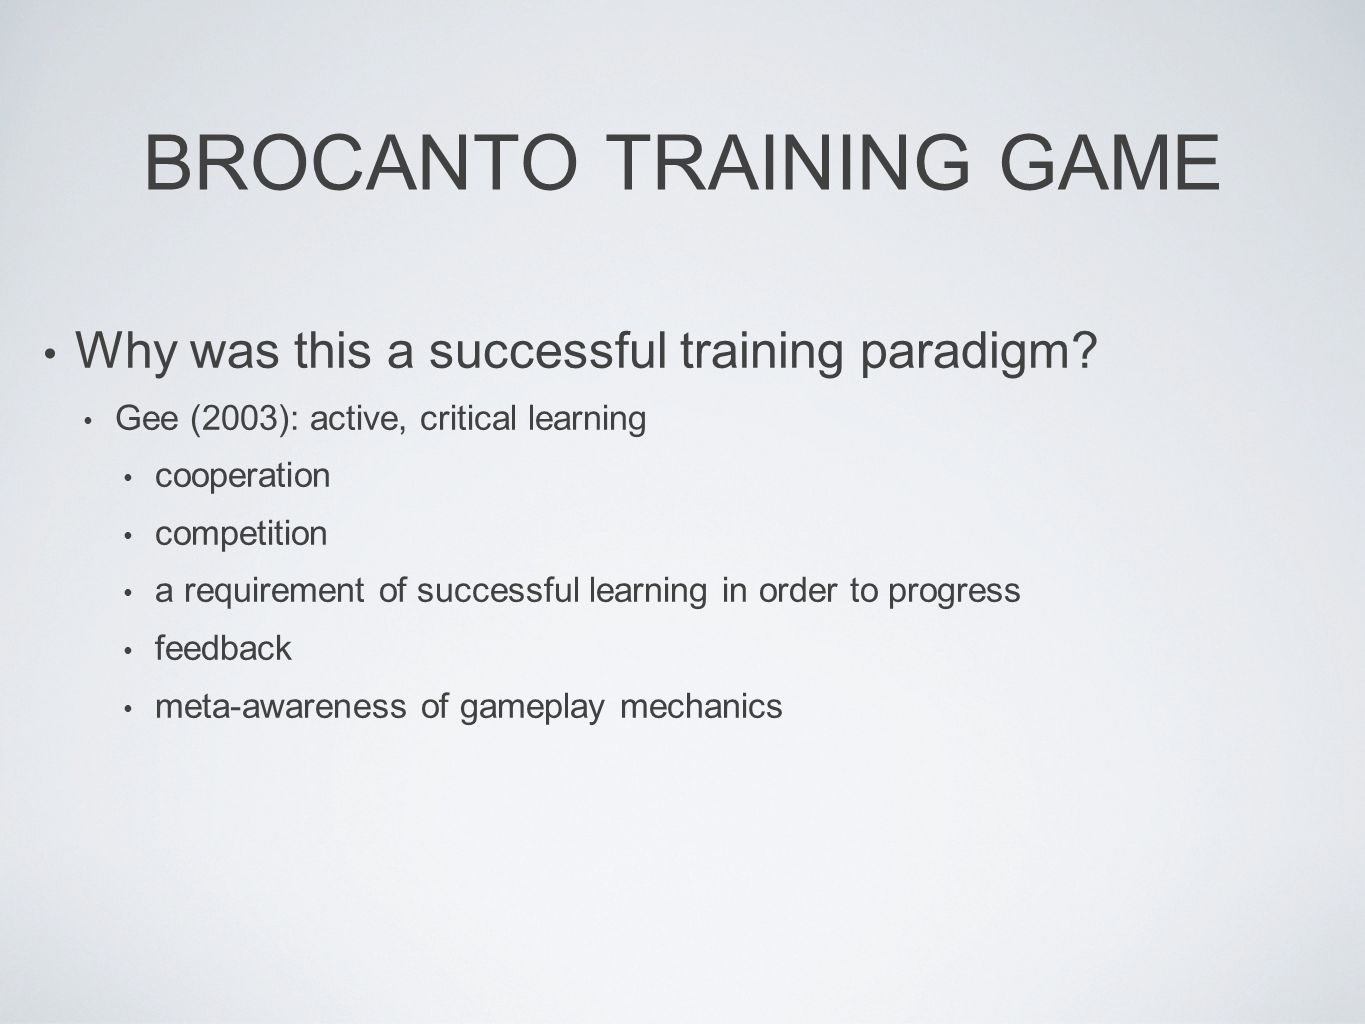 BROCANTO TRAINING GAME Why was this a successful training paradigm? Gee (2003): active, critical learning cooperation competition a requirement of suc